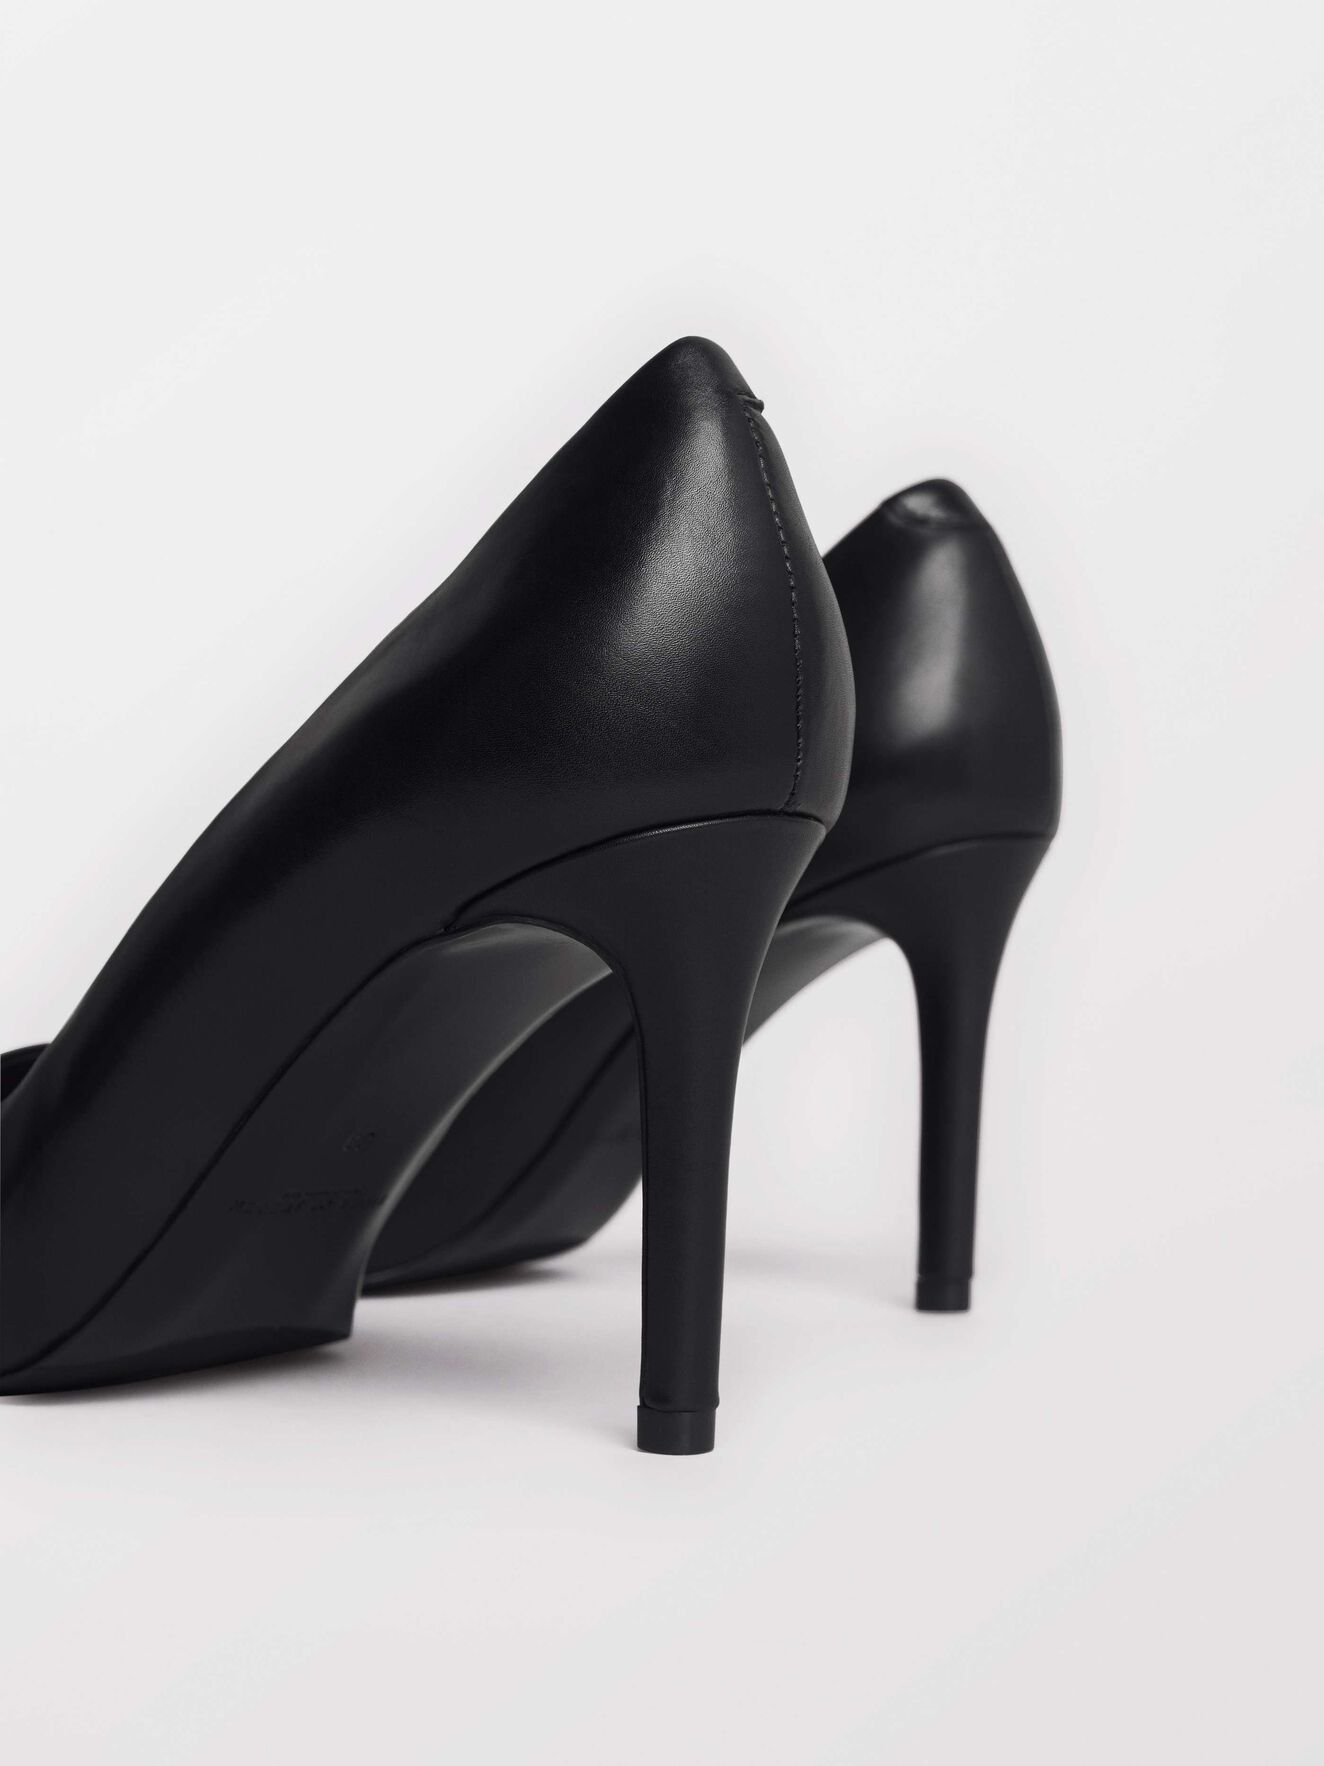 Xero Pumps in Black from Tiger of Sweden